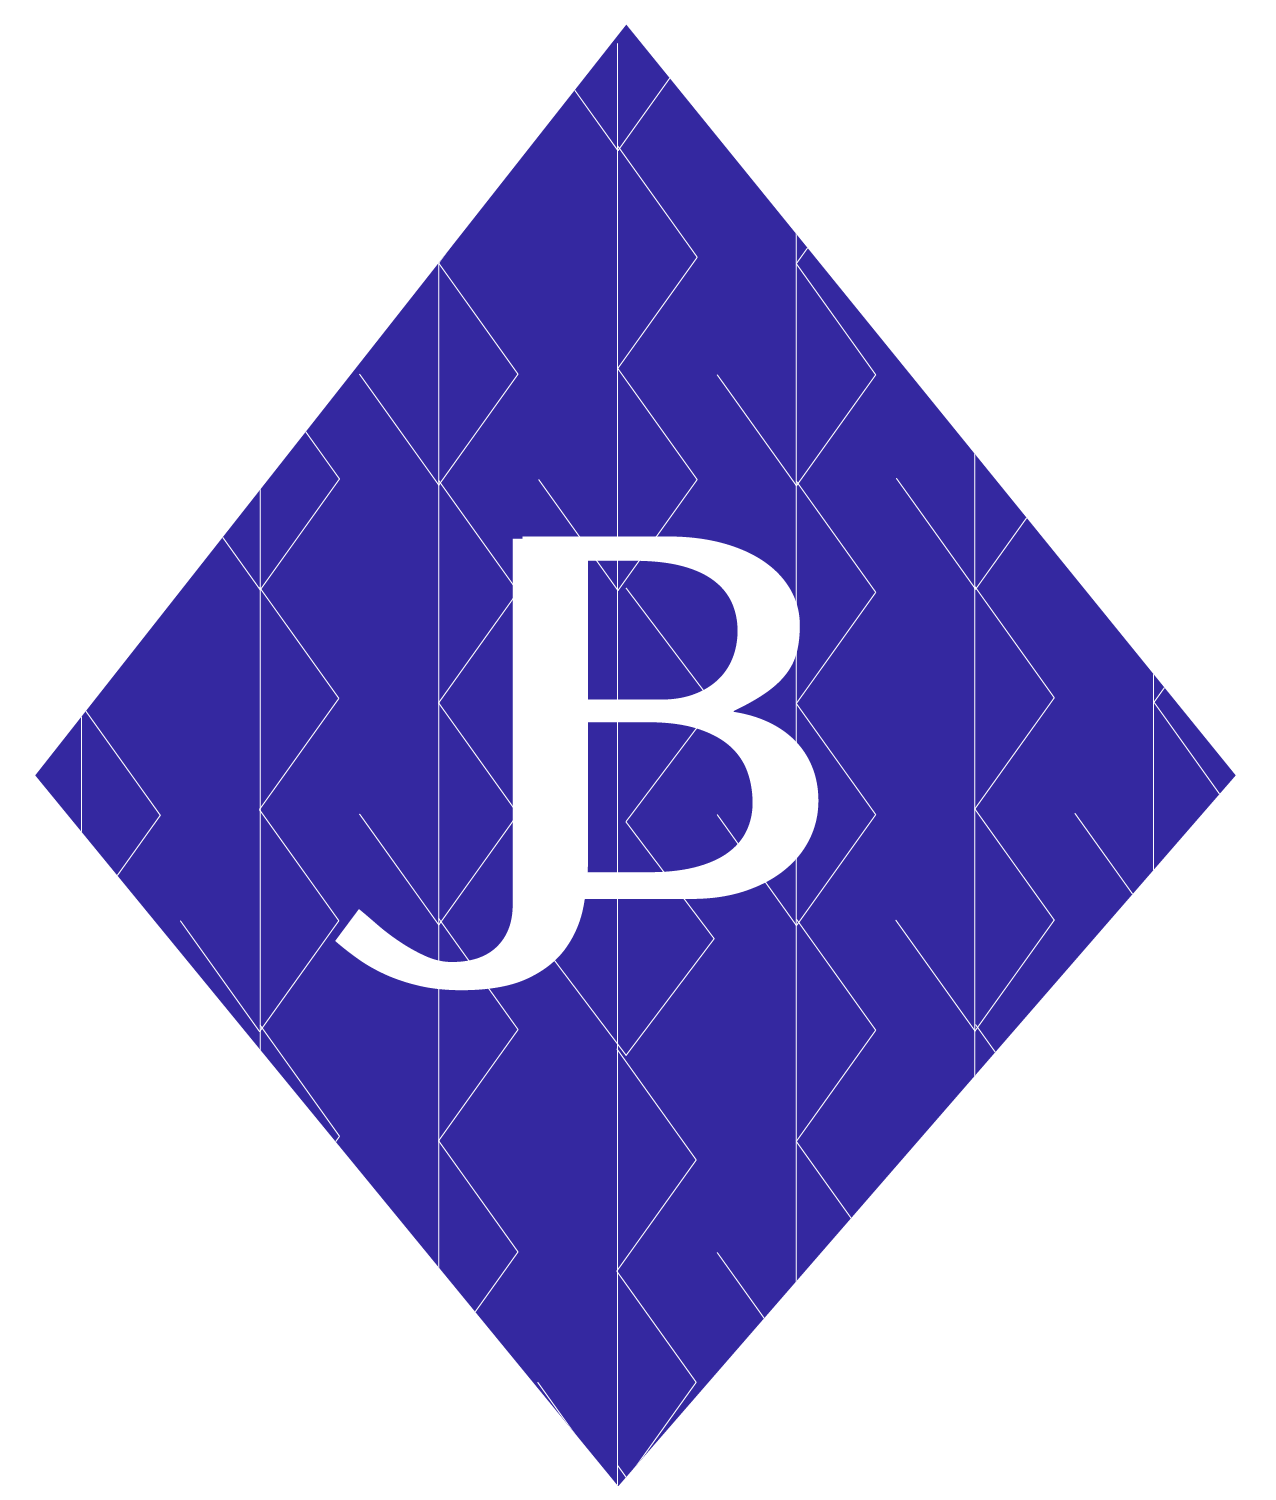 icon-blue.png